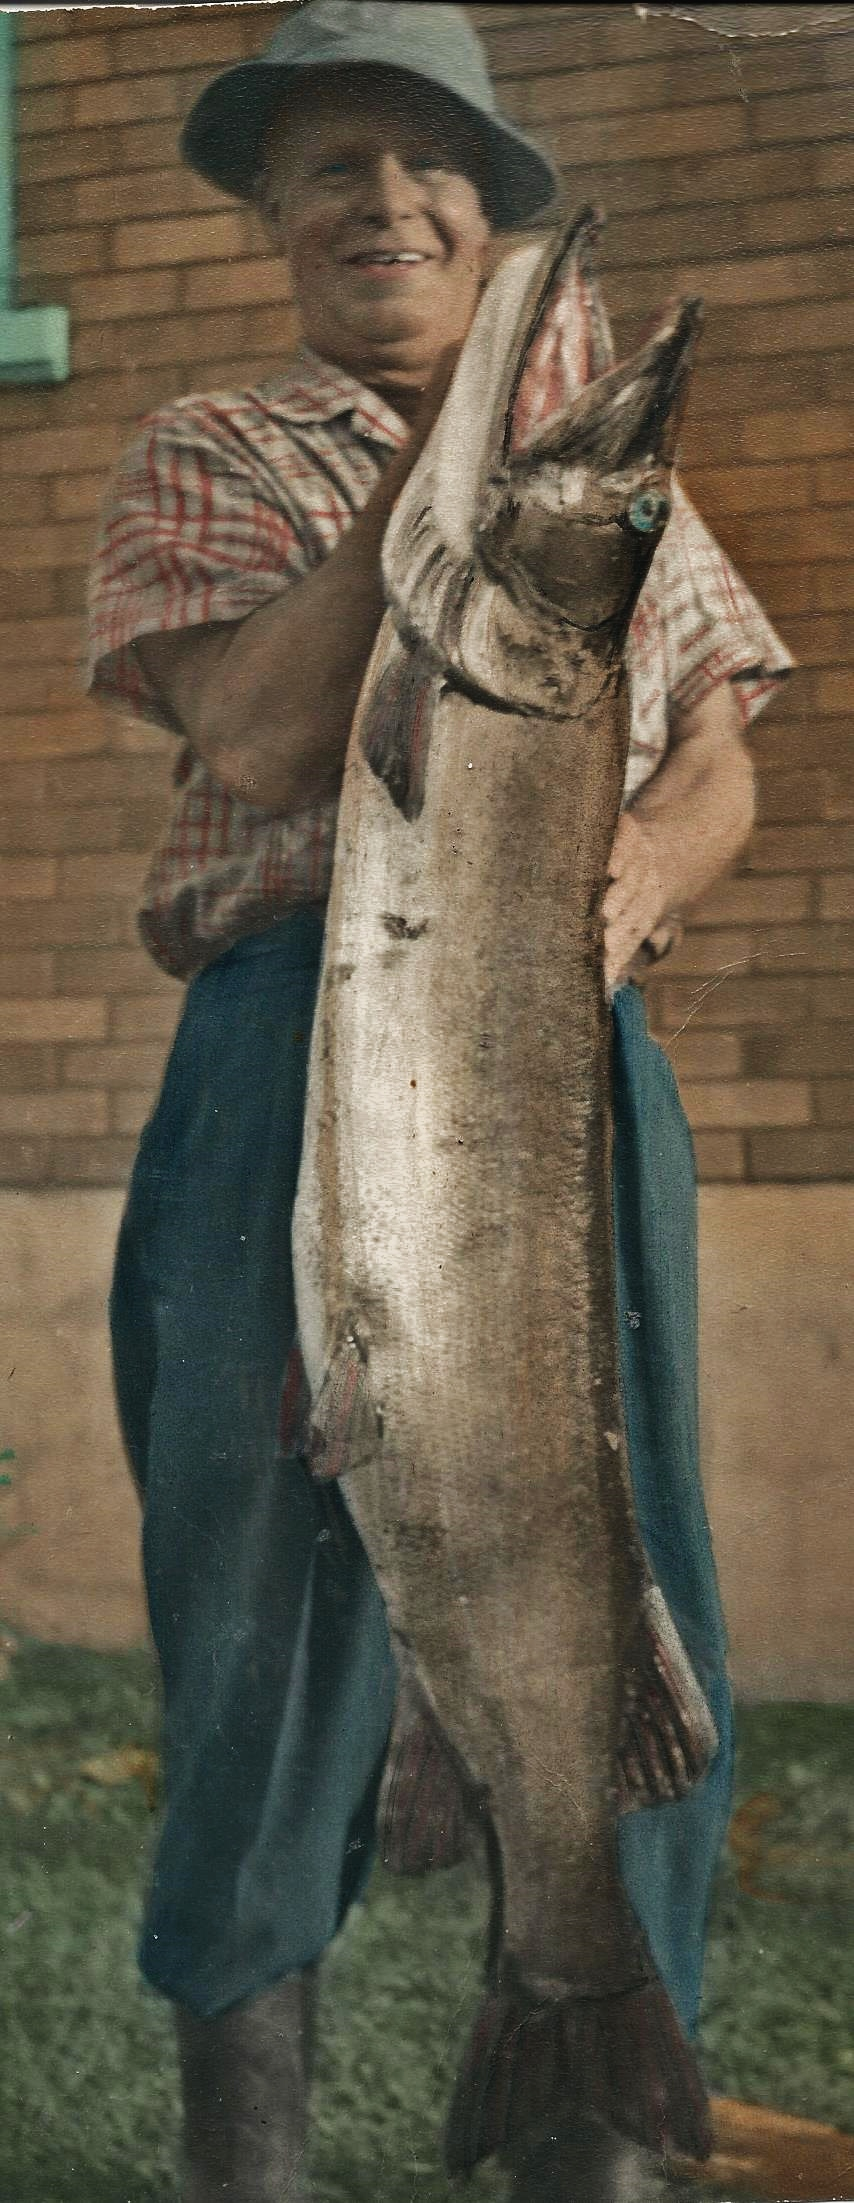 George's main catch was a 47 pound muskielunge.